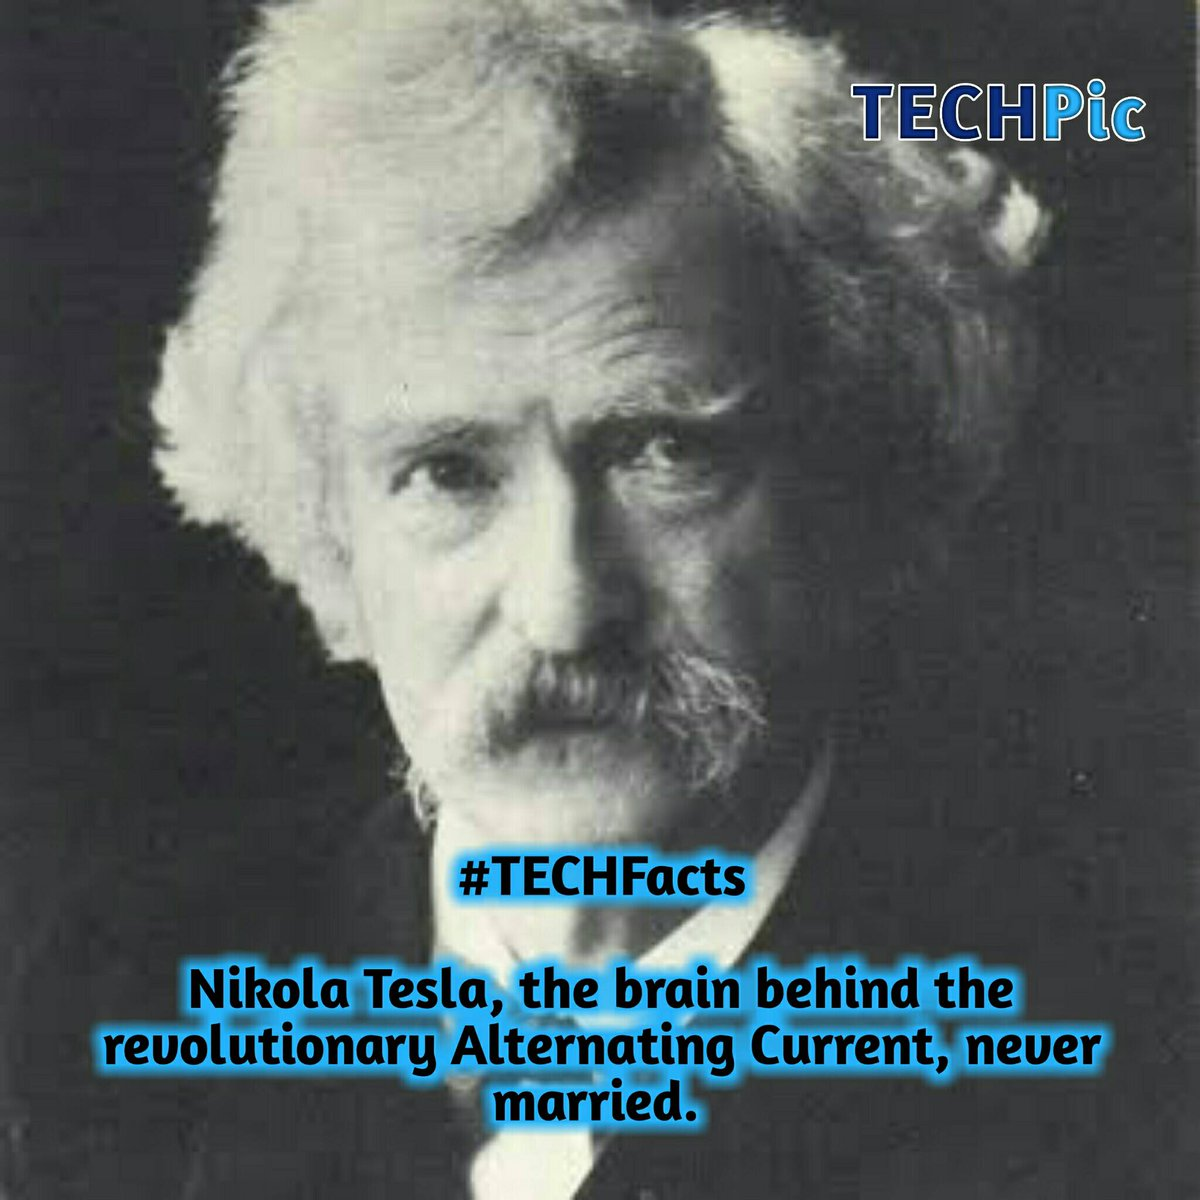 #TECHFacts  Nikola Tesla, the brain behind Alternating Currents, never married. pic.twitter.com/F2nFVcujMO